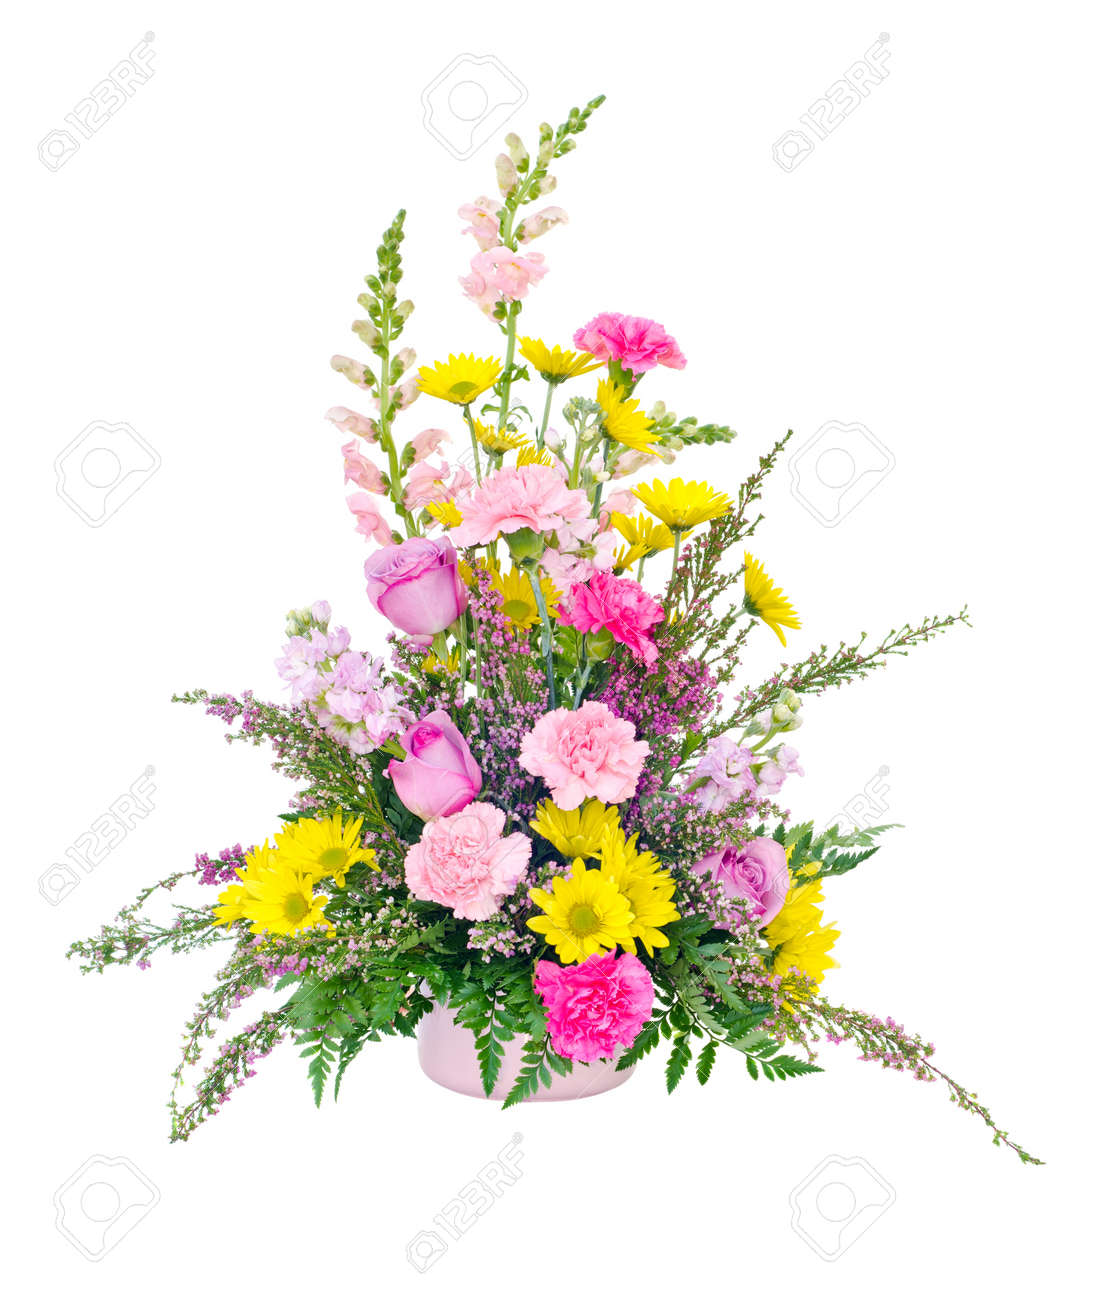 Colorful fresh flower arrangement centerpiece with daisies colorful fresh flower arrangement centerpiece with daisies carnations roses and snapdragons isolated on white izmirmasajfo